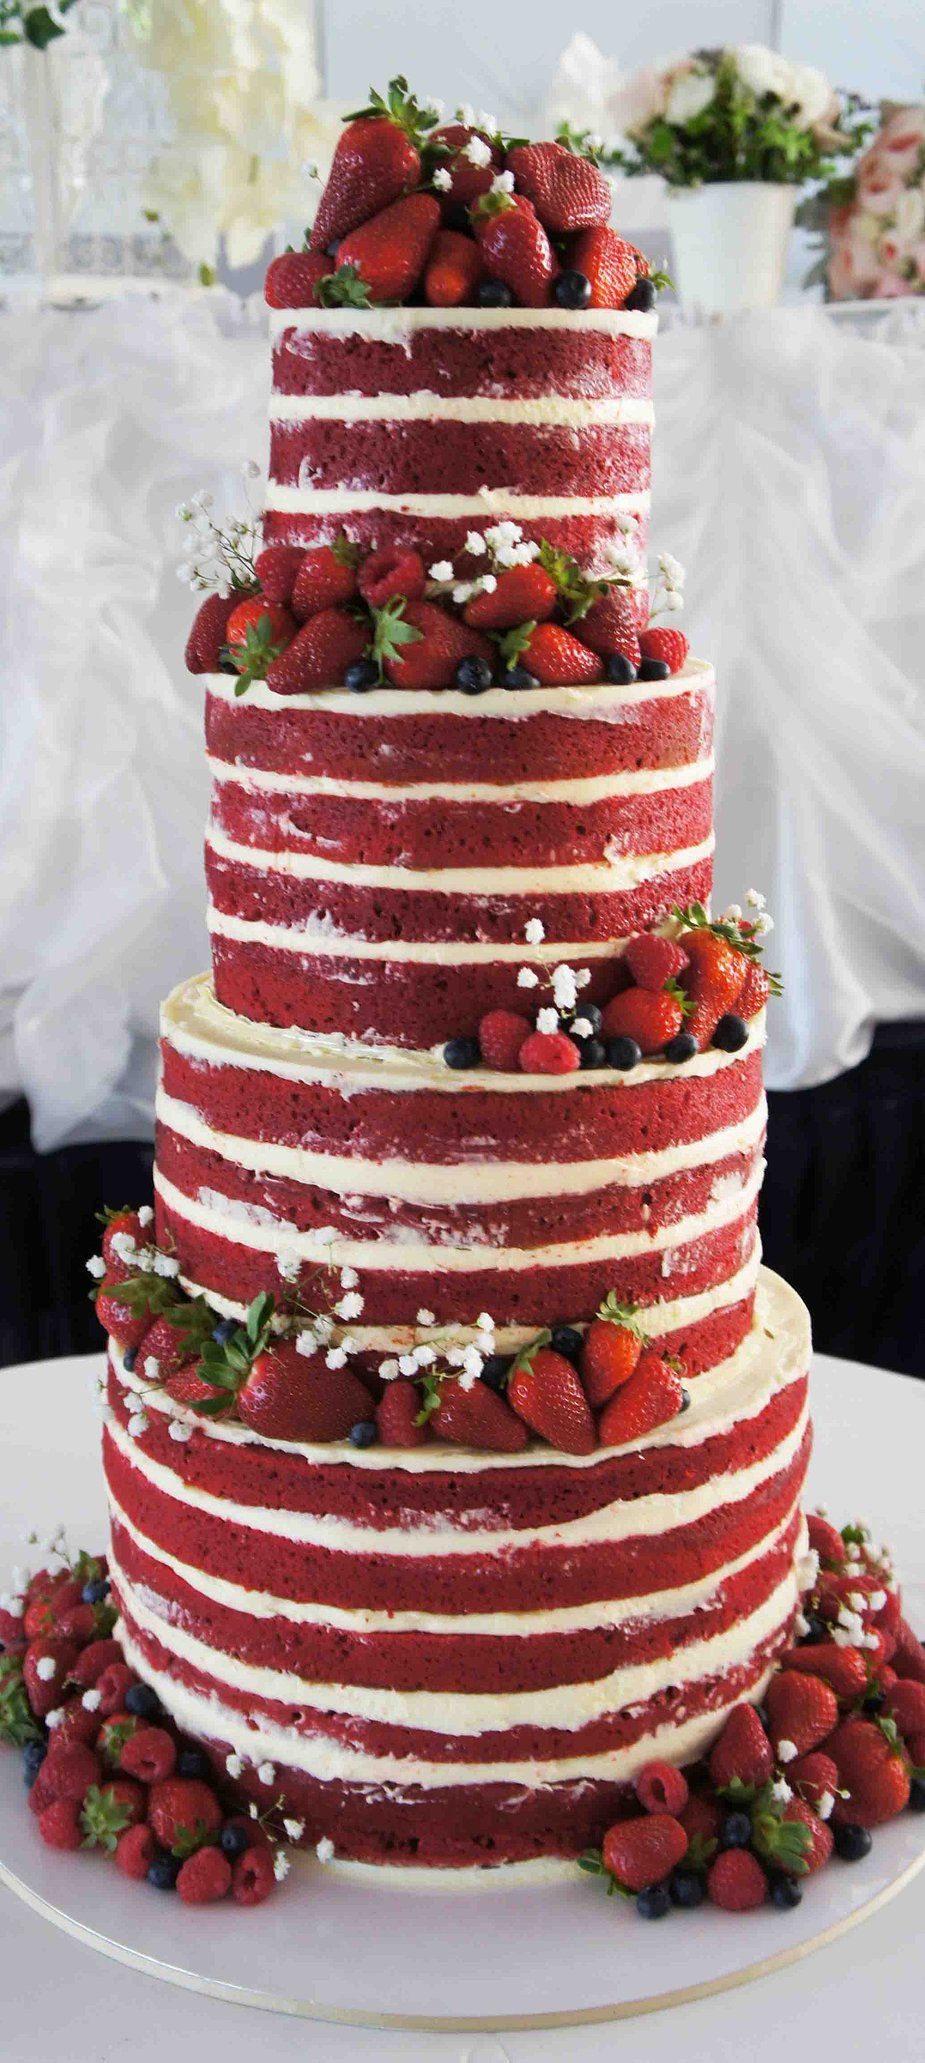 Ruby Wedding Anniversary Cake Naked Red Velvet Cake